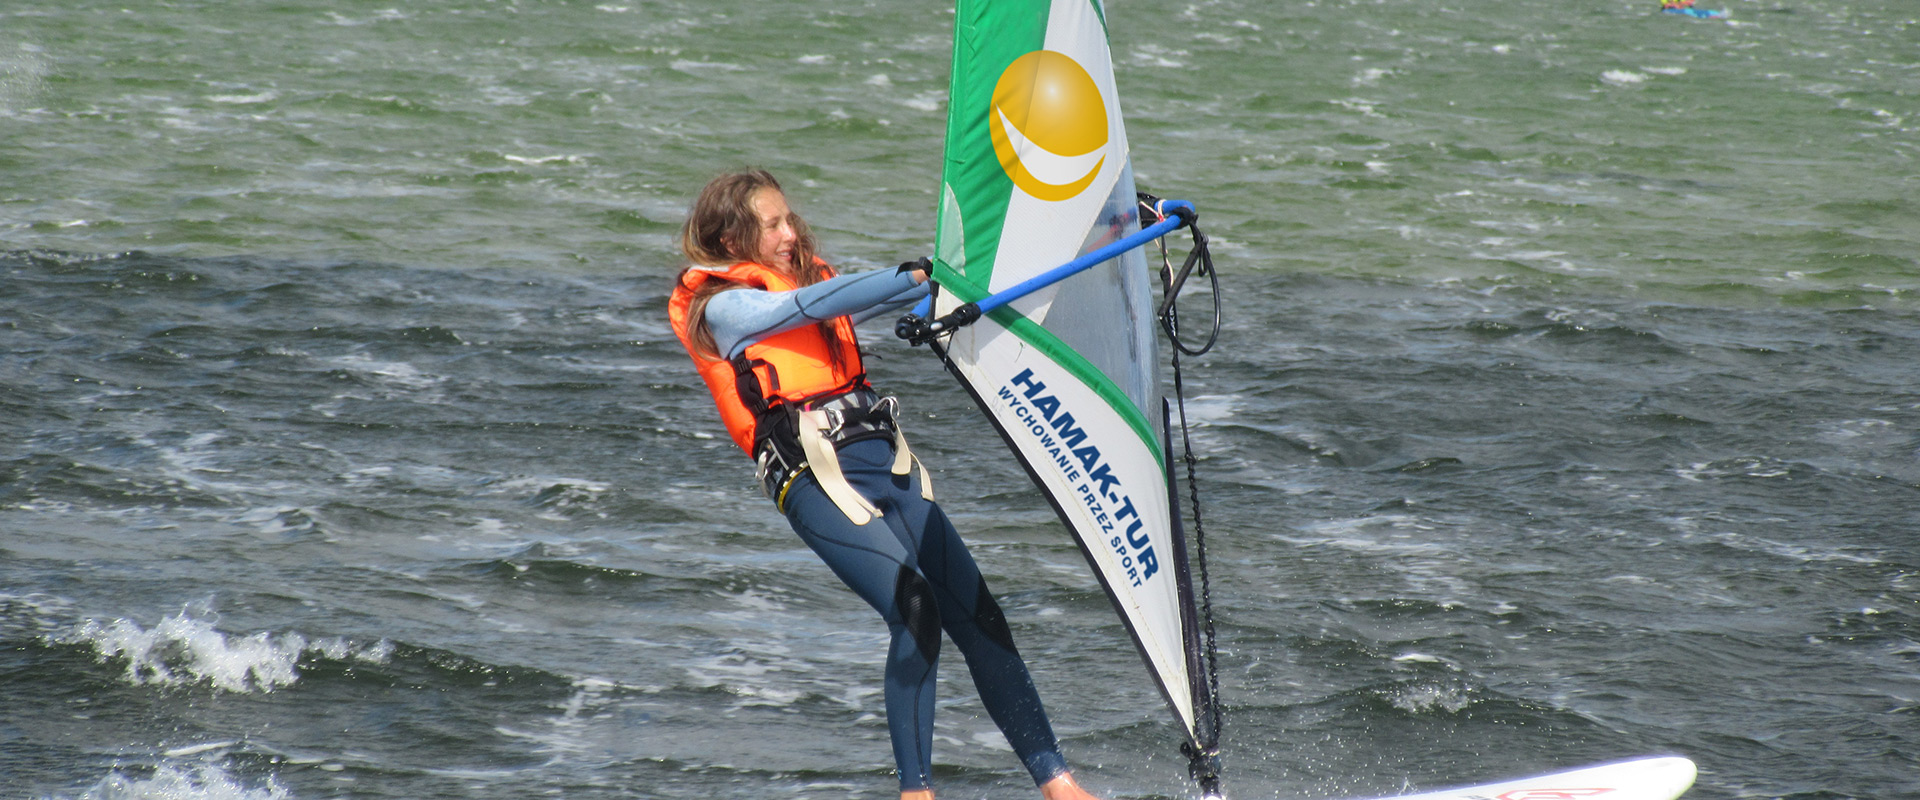 SURF CAMP-WINDSURFING